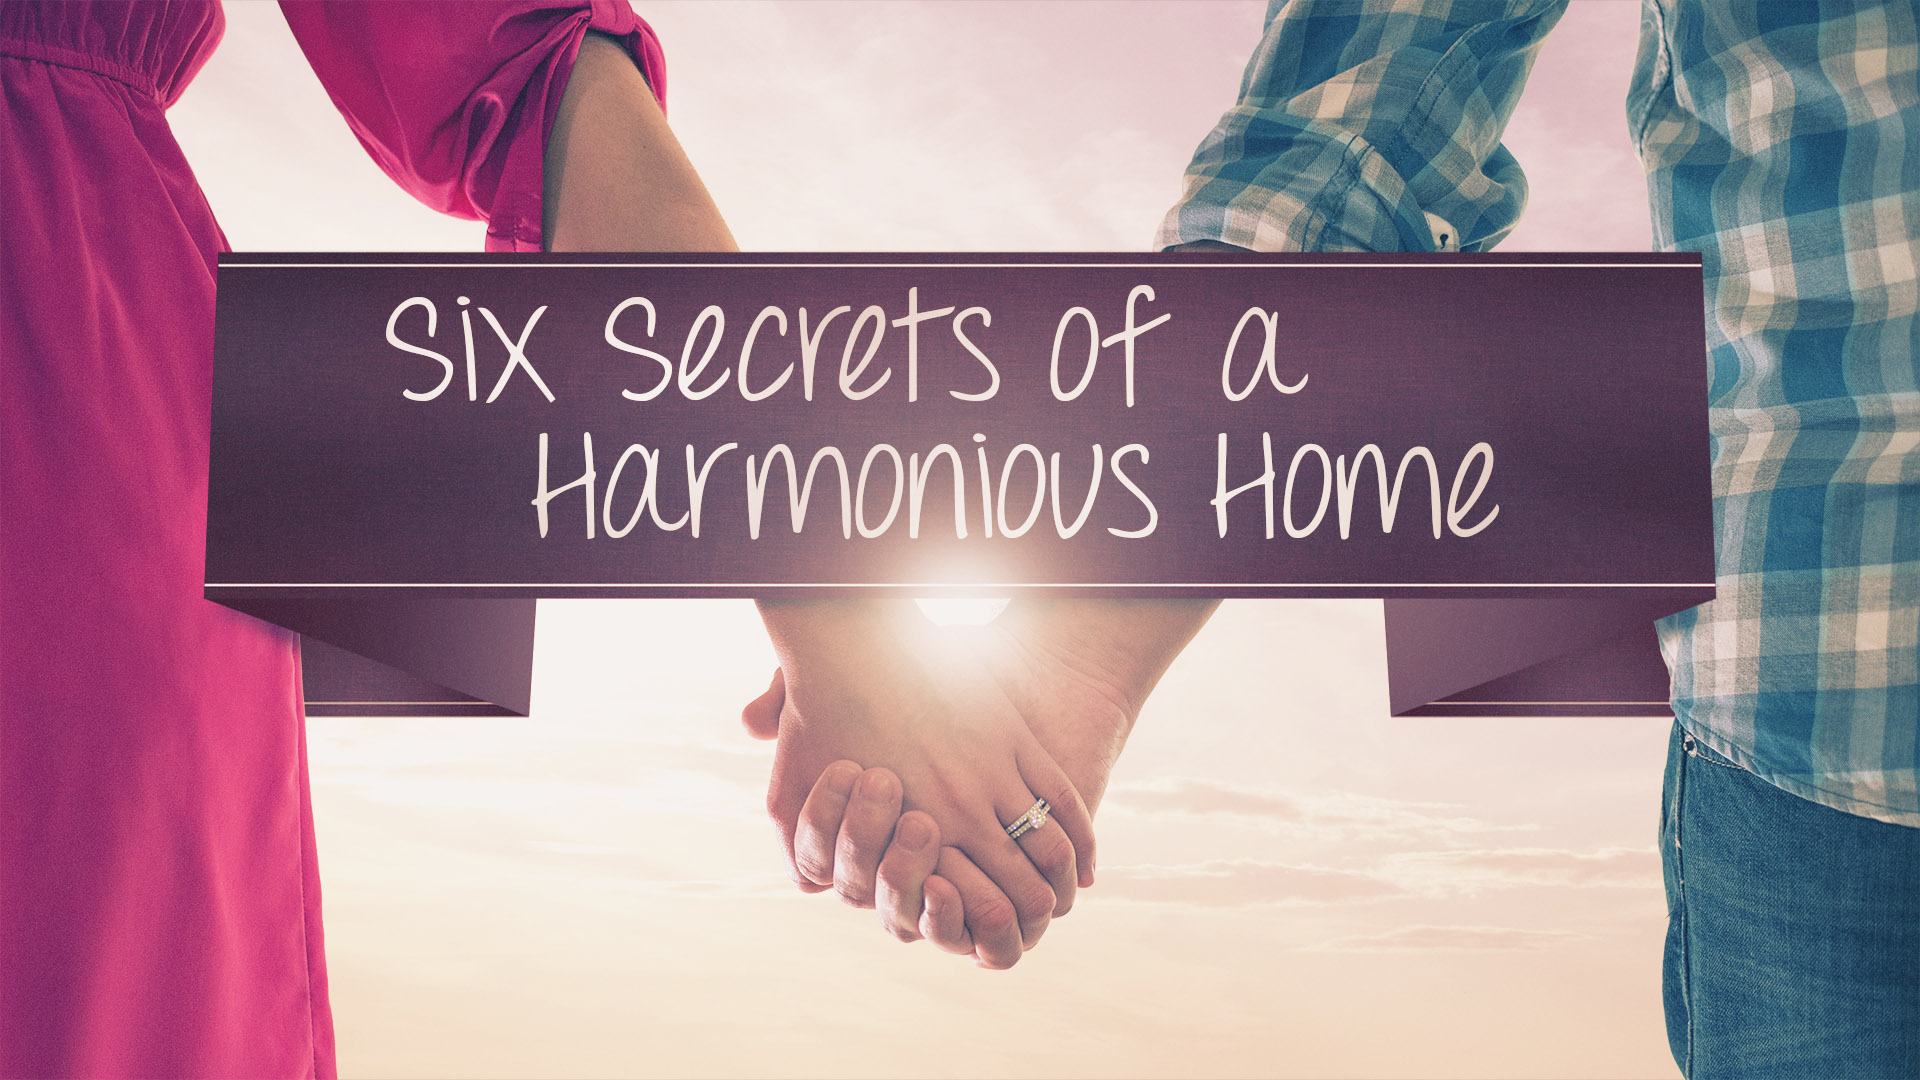 Six Secrets of a Harmonious Home